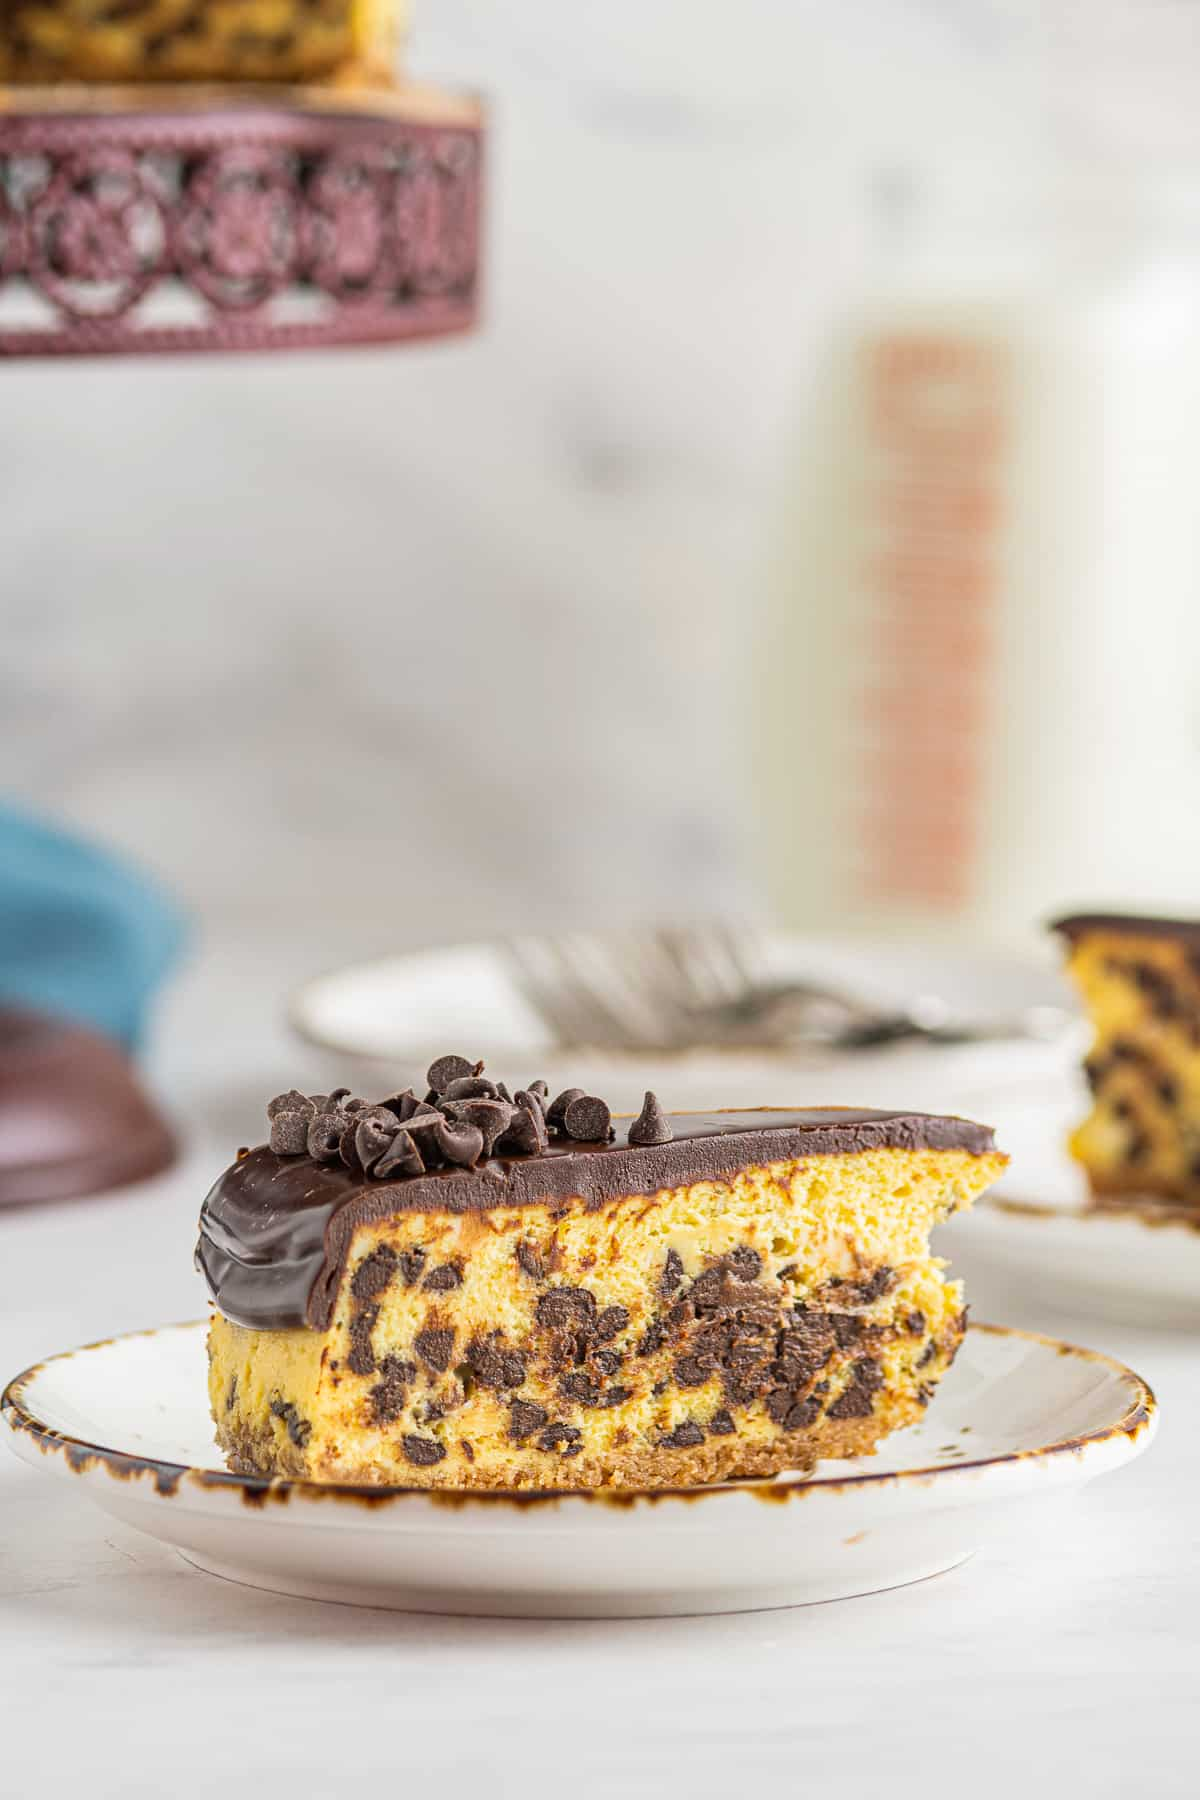 slice of chocolate chip cheesecake on white plate